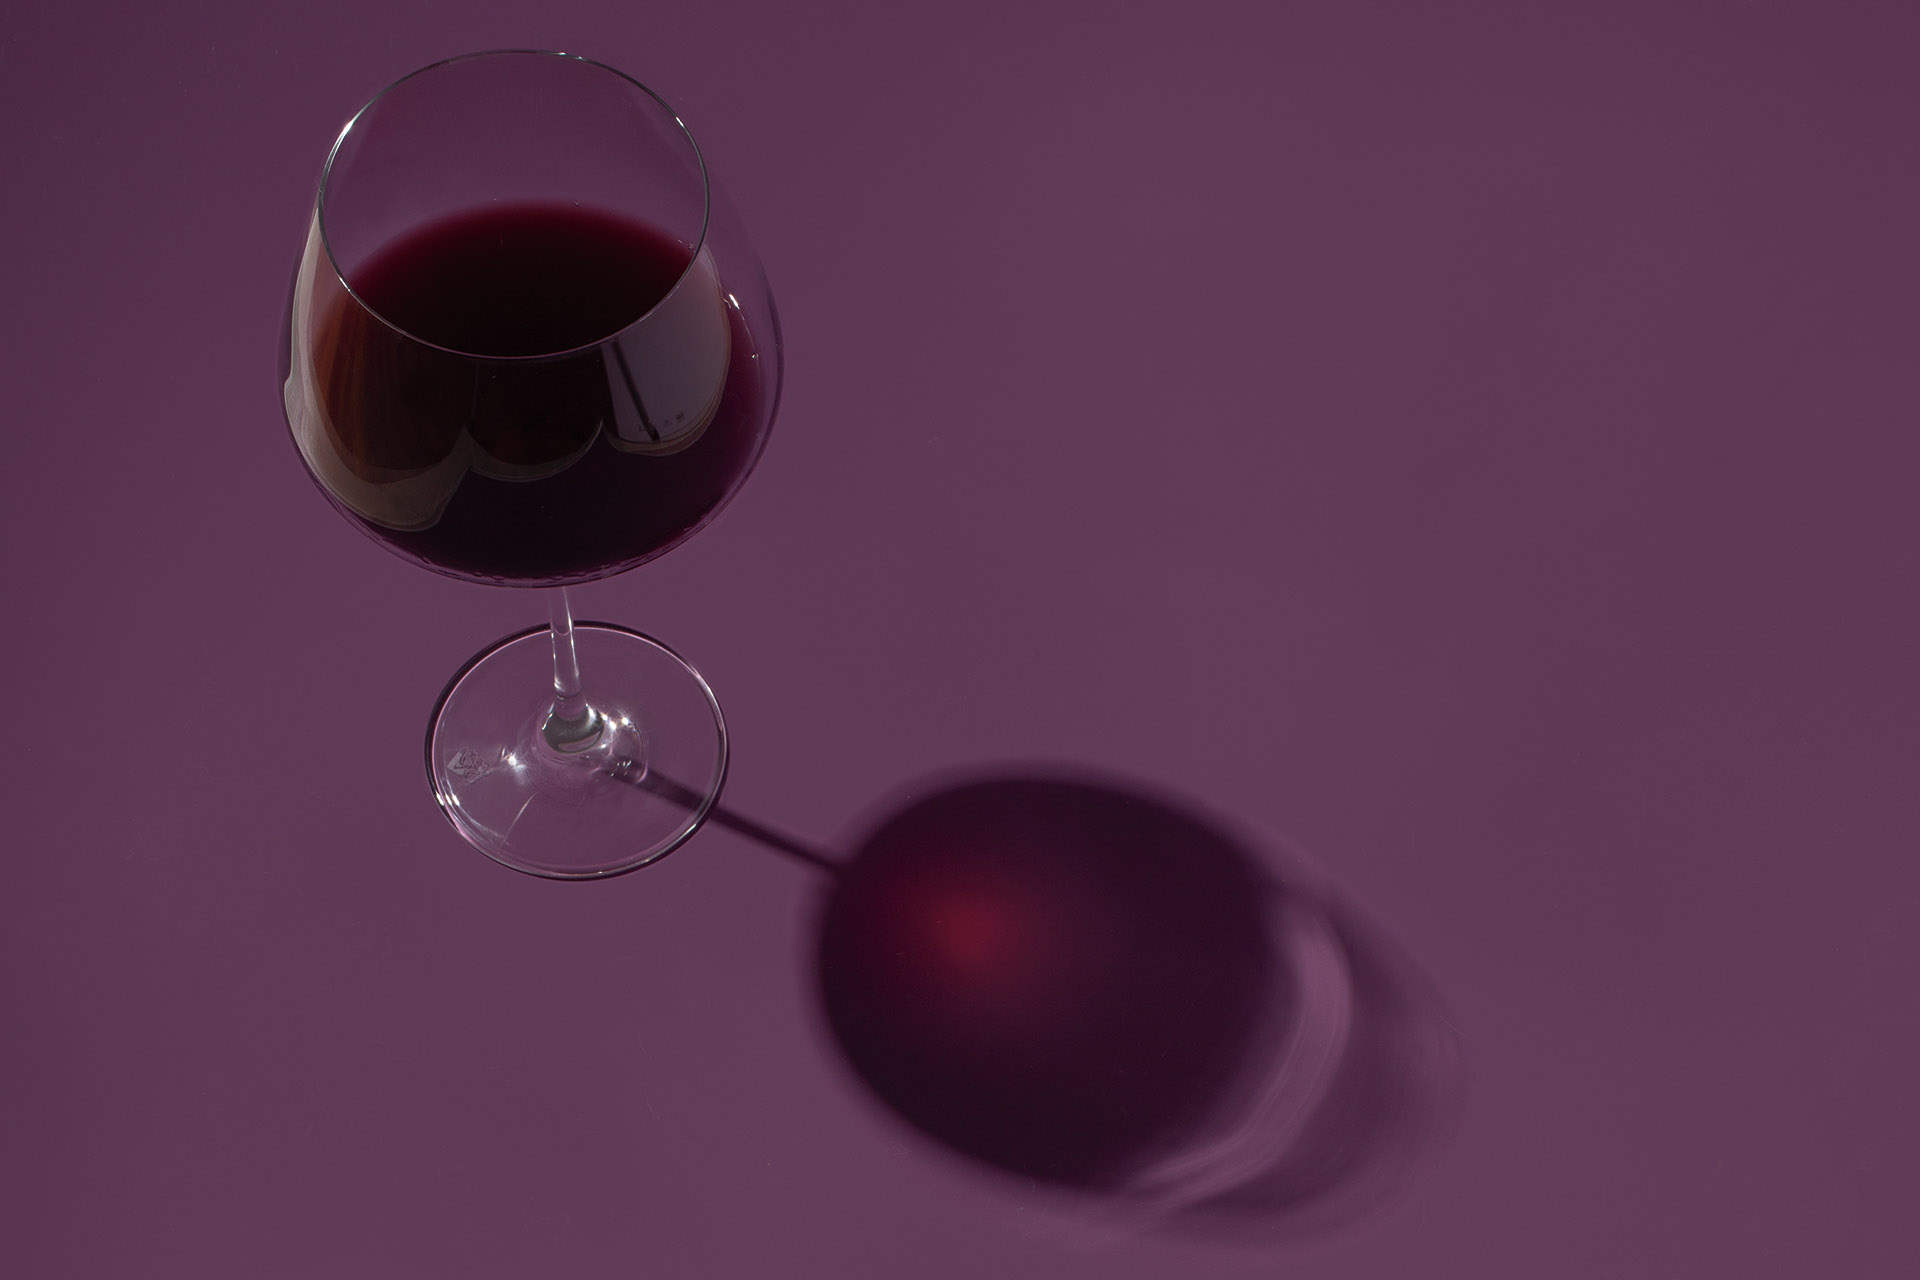 30 All-American Pinot Noirs